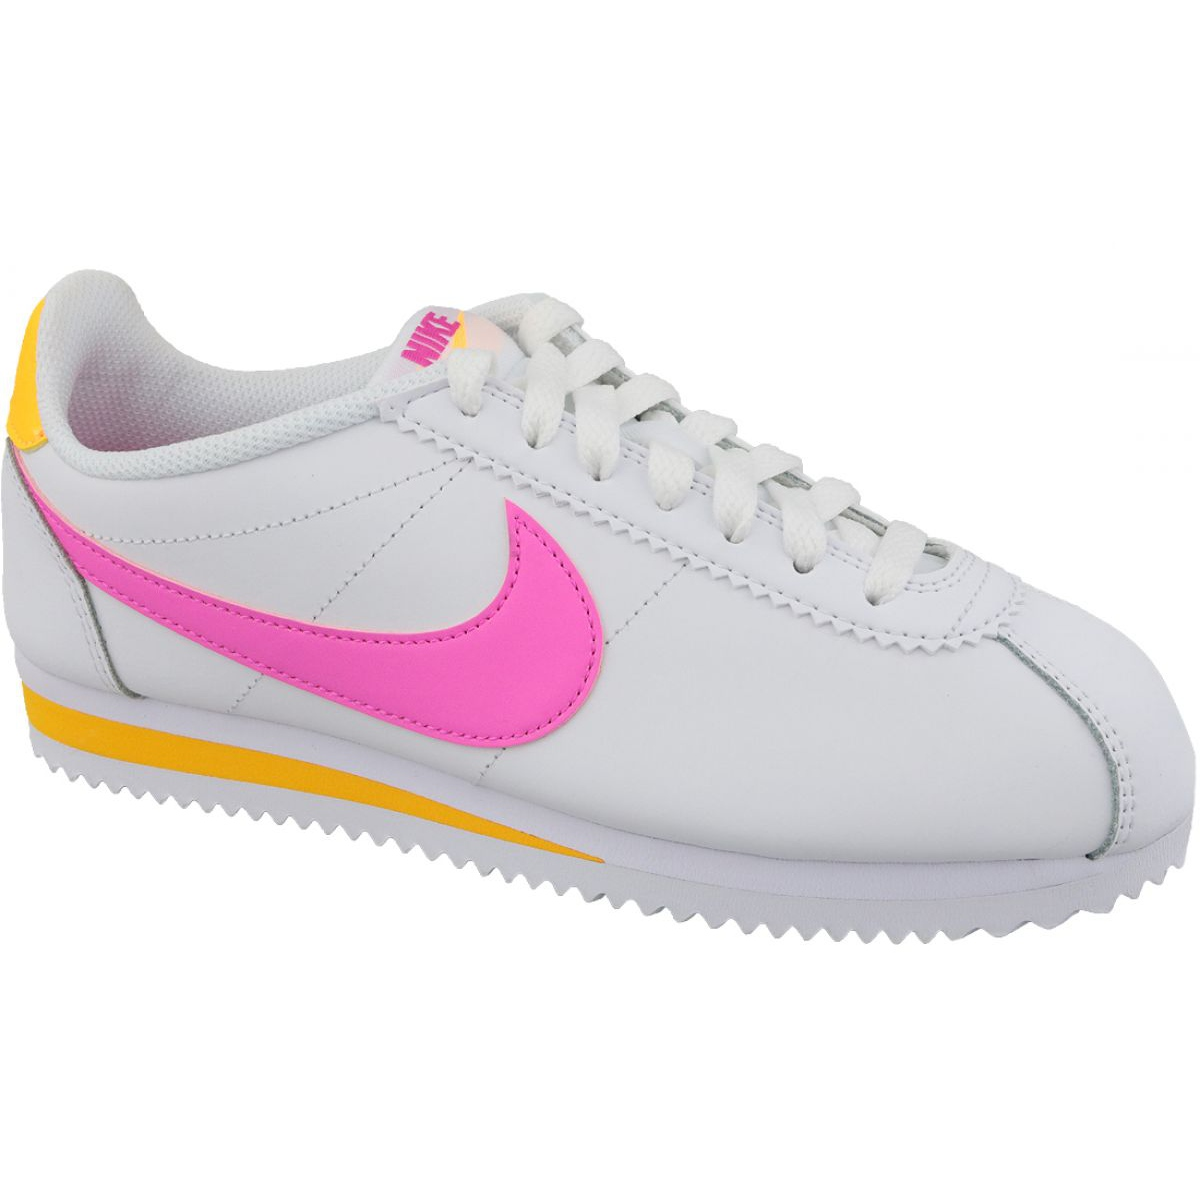 Details about Nike Classic Cortez Leather W 807471 112 white